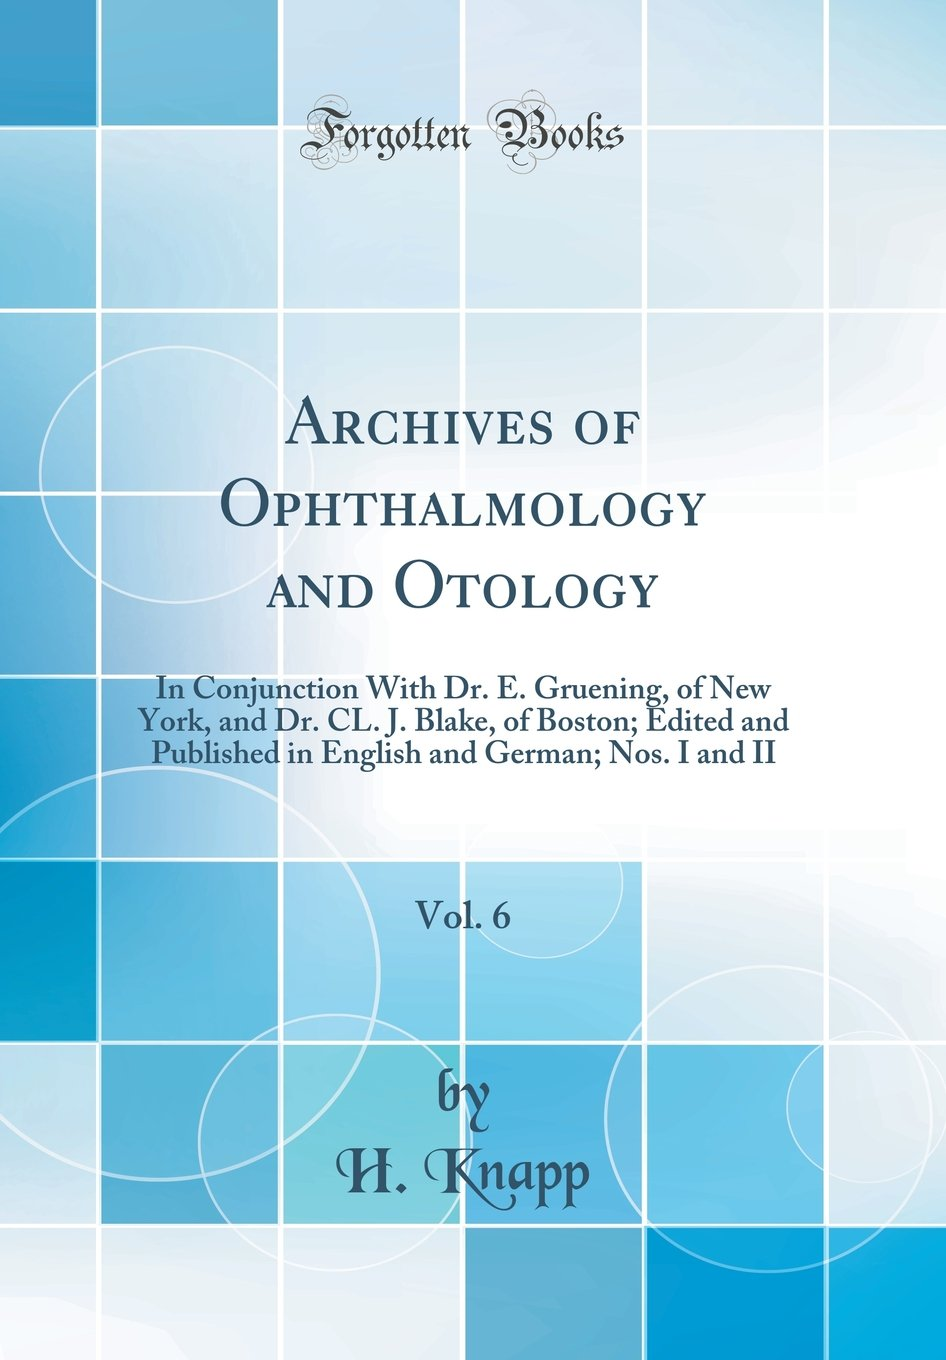 Read Online Archives of Ophthalmology and Otology, Vol. 6: In Conjunction With Dr. E. Gruening, of New York, and Dr. CL. J. Blake, of Boston; Edited and Published ... and German; Nos. I and II (Classic Reprint) ebook